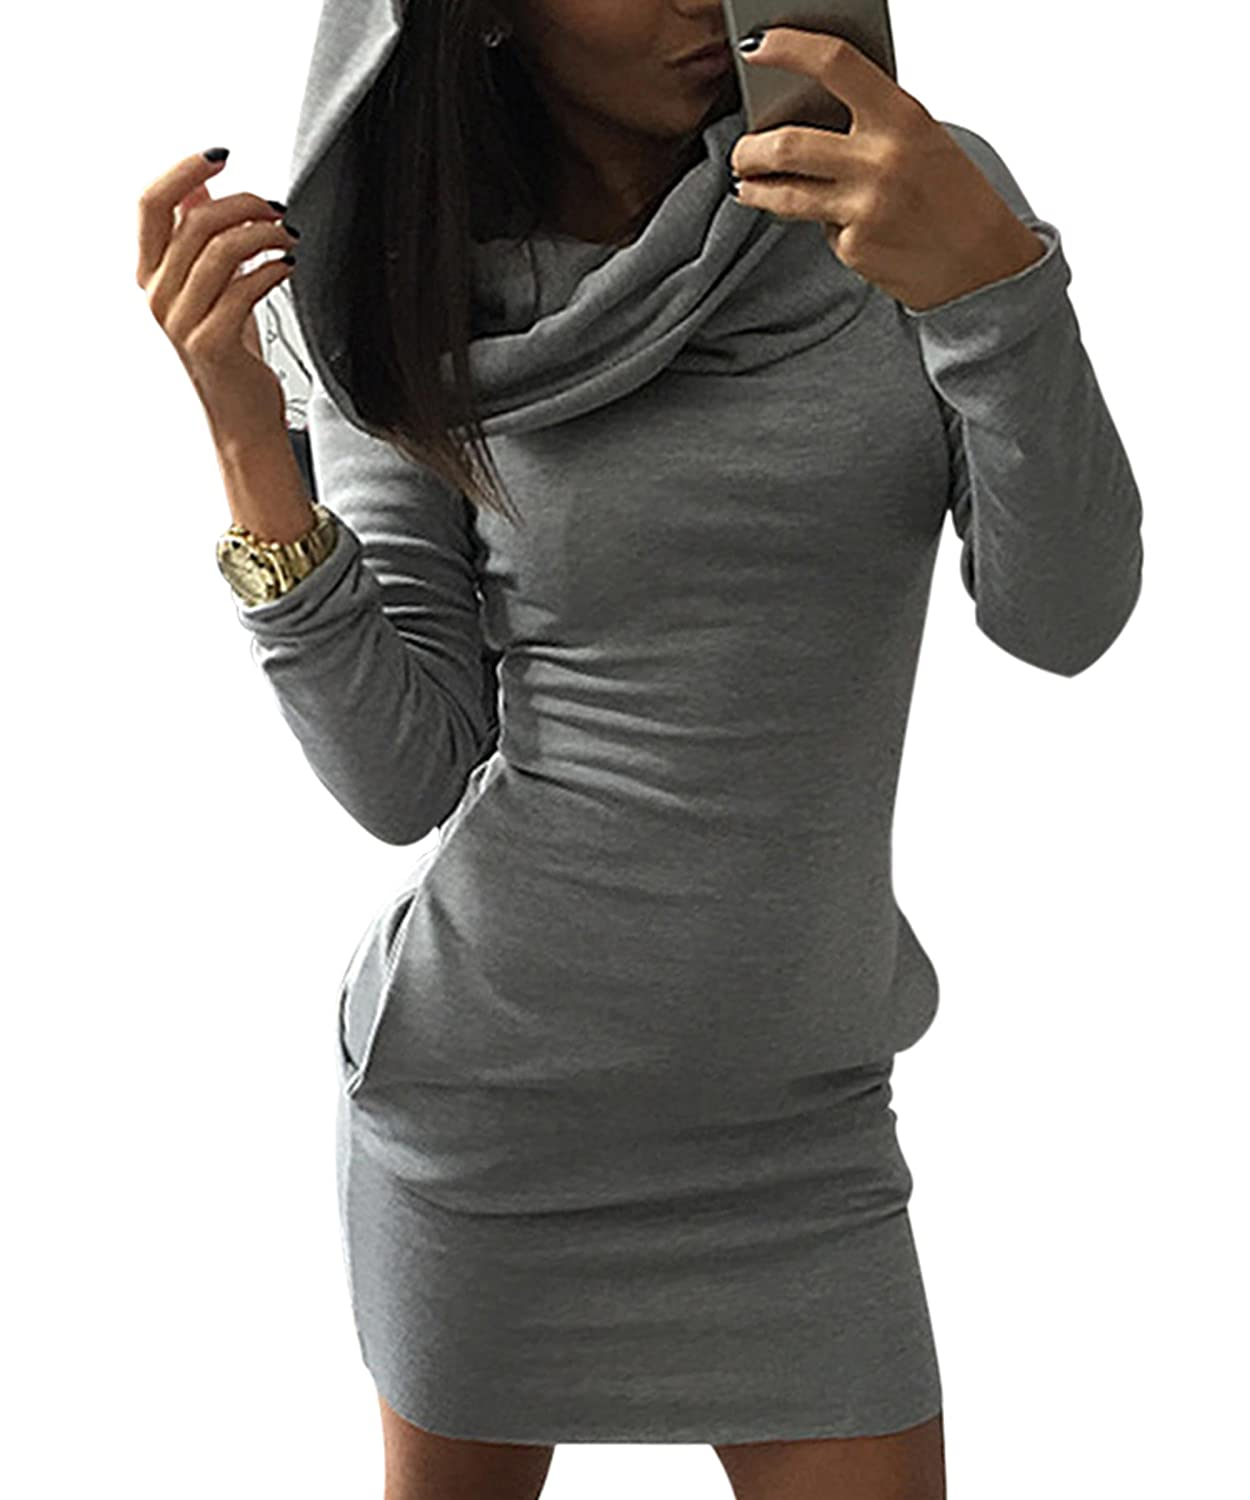 cooshional Damen Pullover Lang Hoodie Sweatshirt Kleid Herbst Bodycon Top:  Amazon.de: Bekleidung